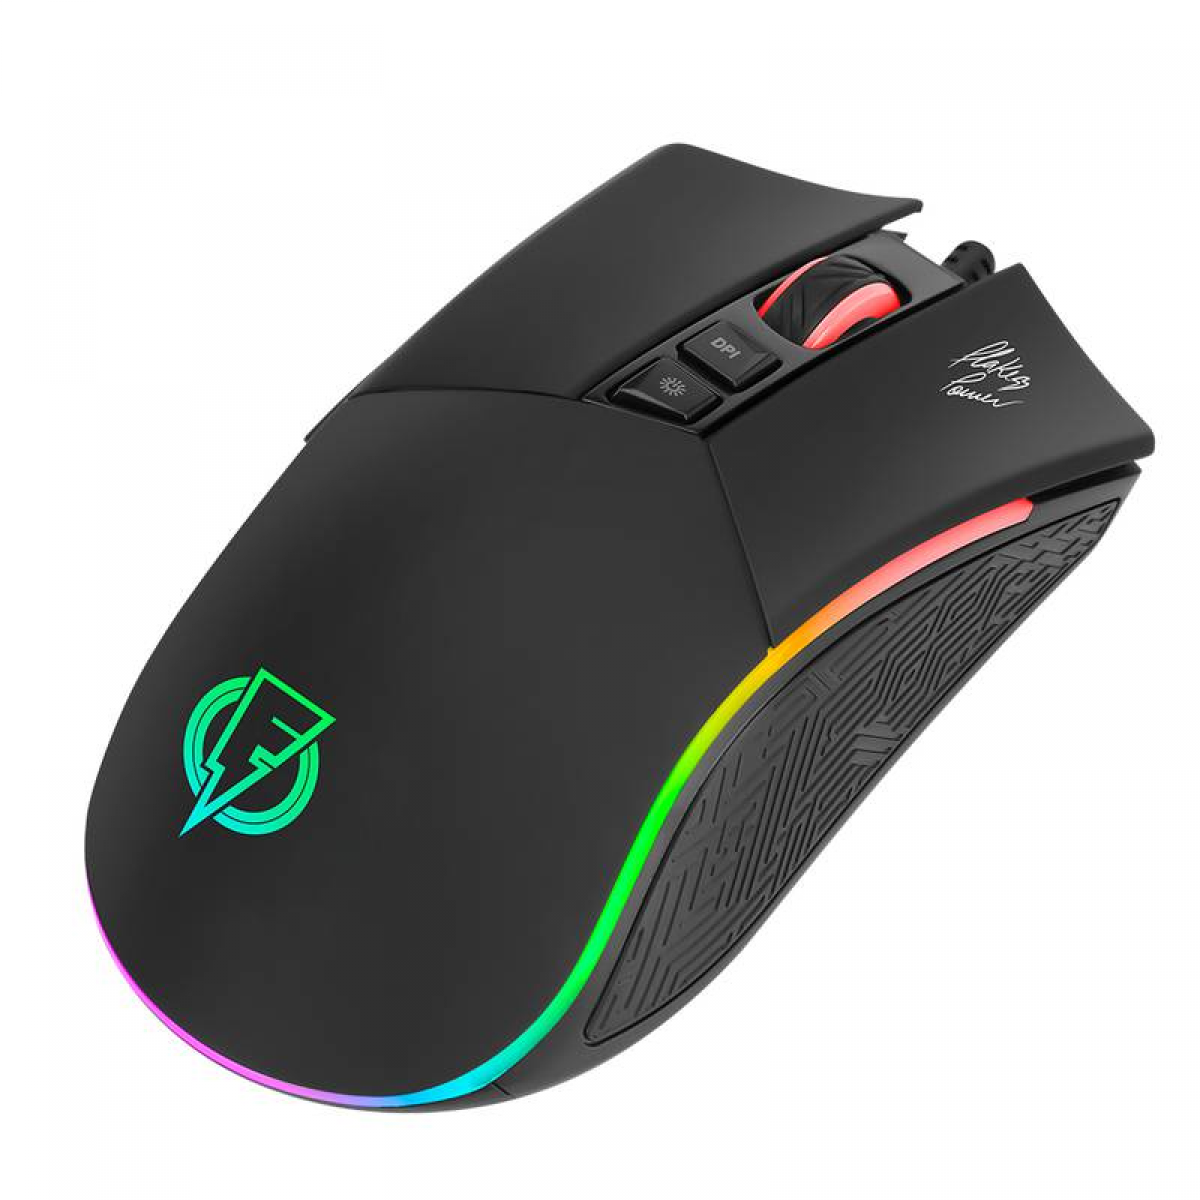 Mouse Gamer ELG Epic Flakes Power, 7 Botões, 4800 DPI, FLKM001